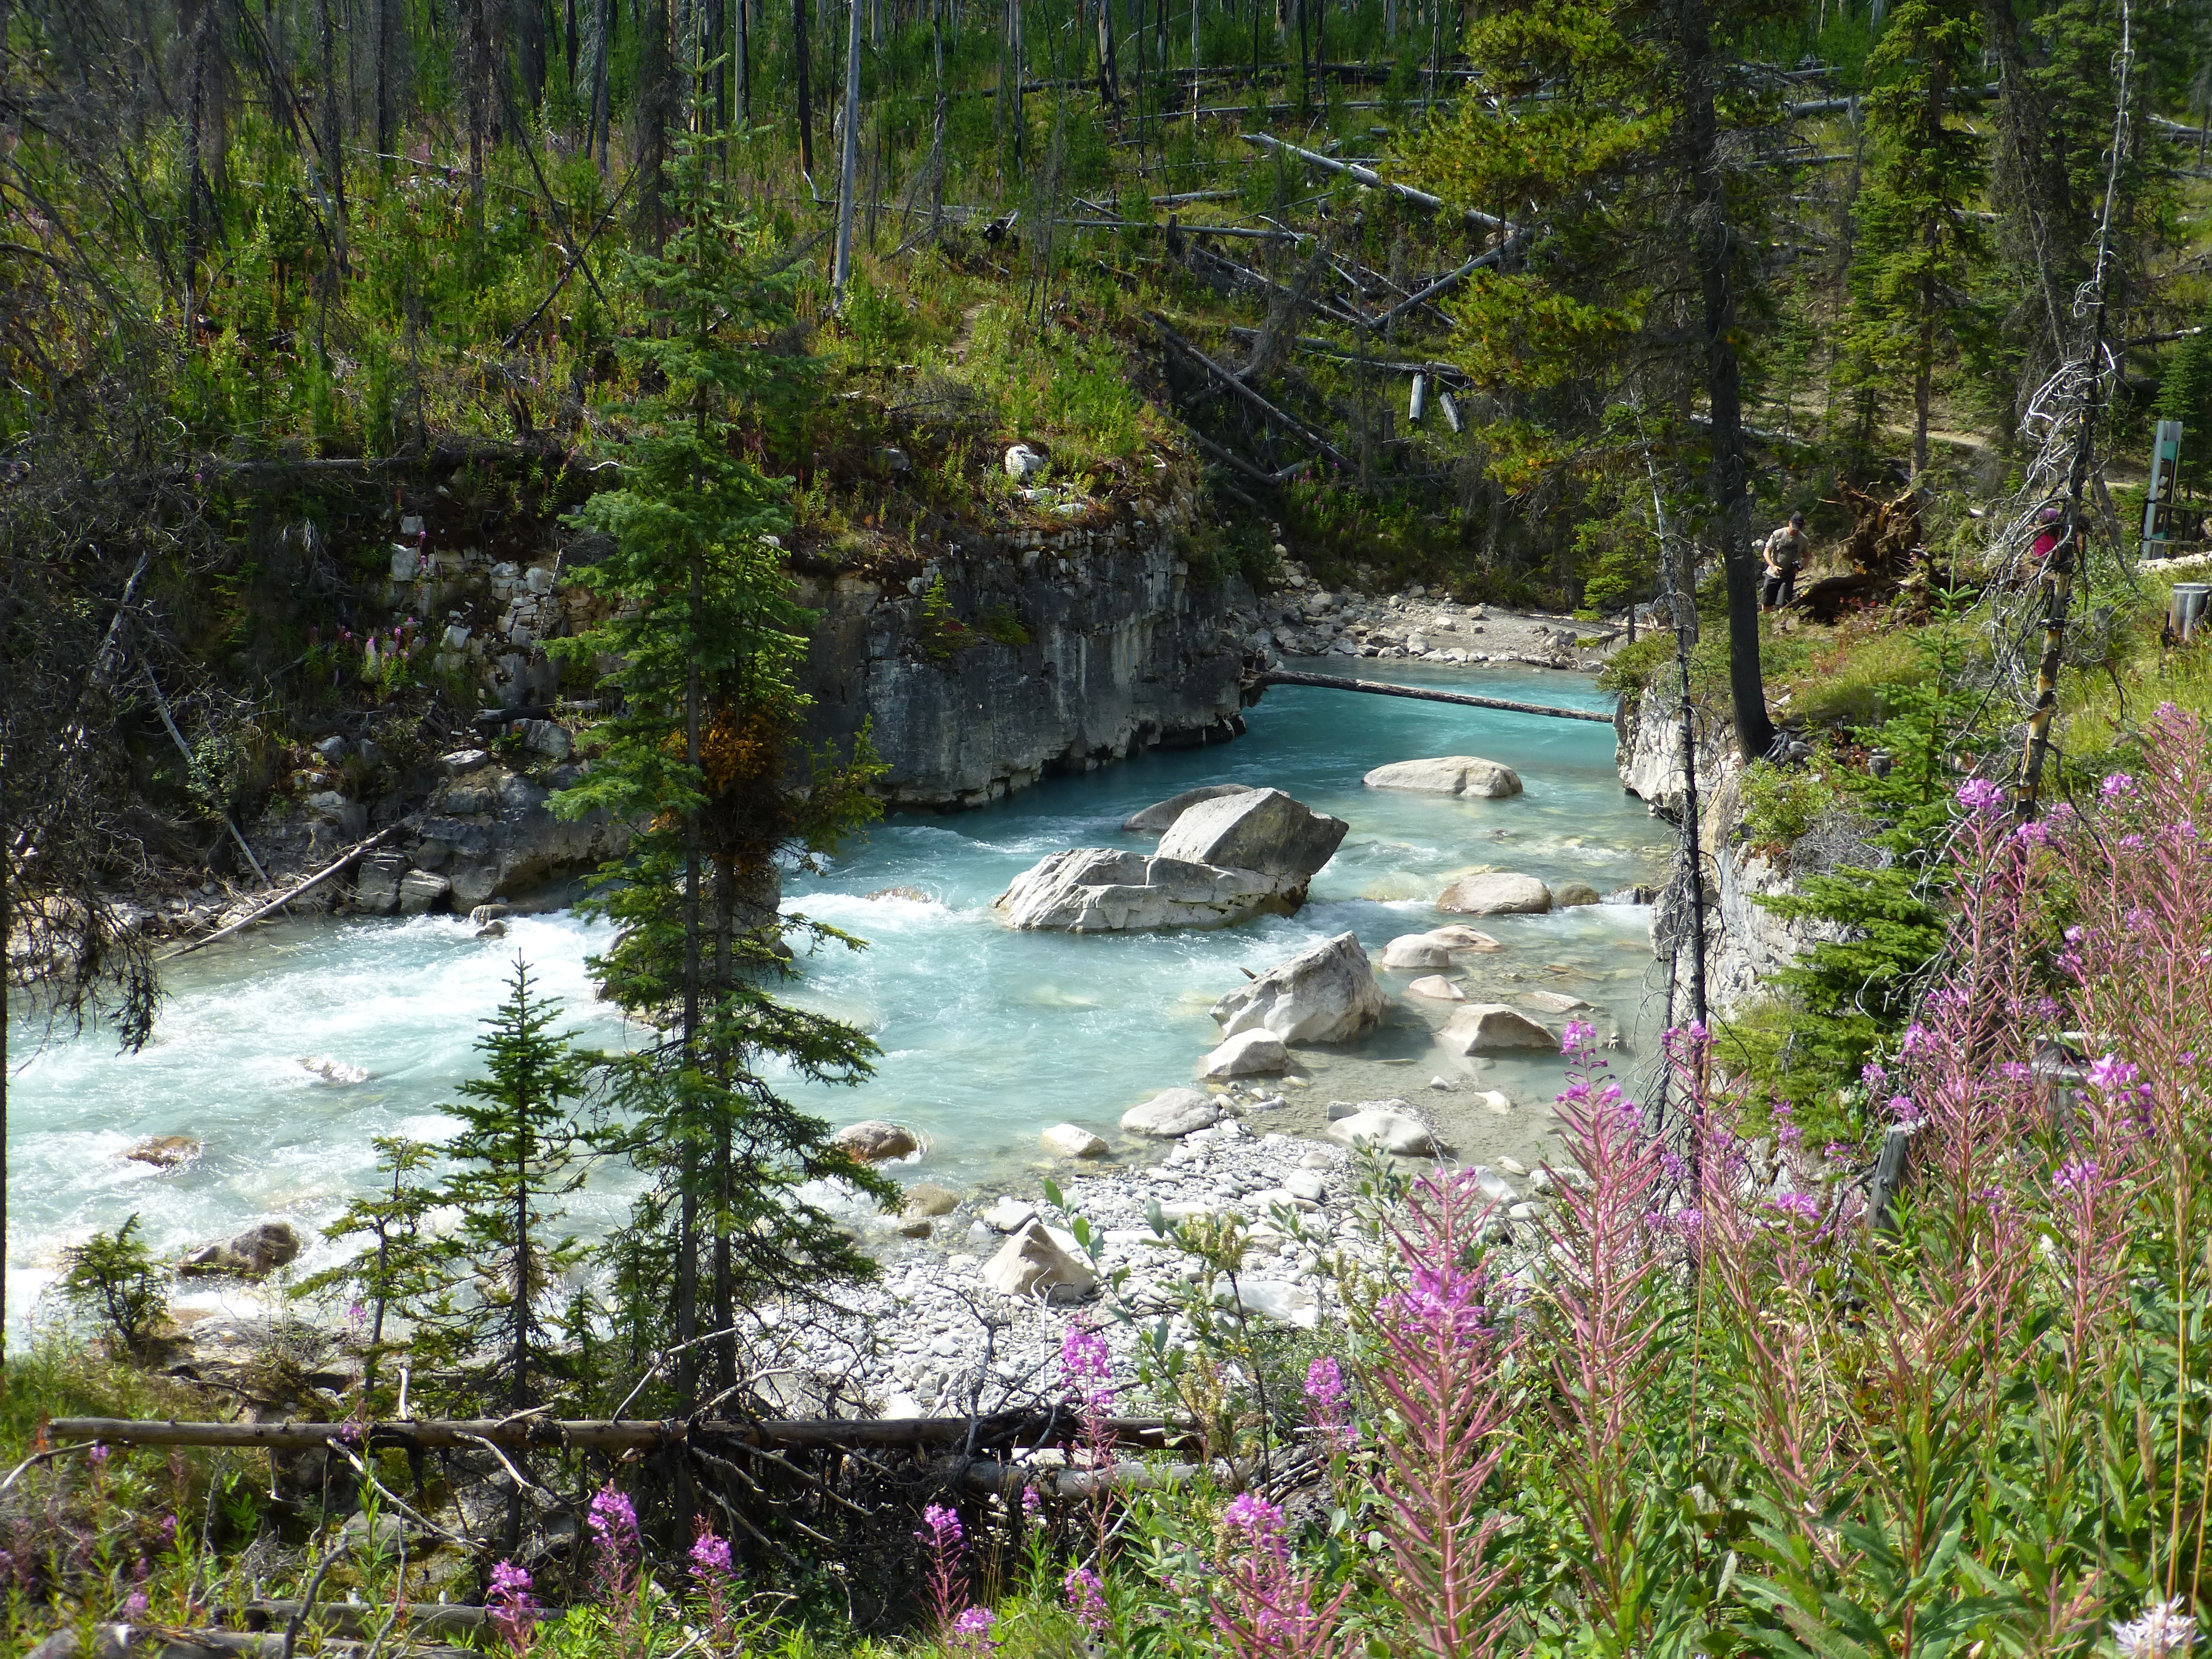 Banff And Kootenay National Parks Canada Day 11